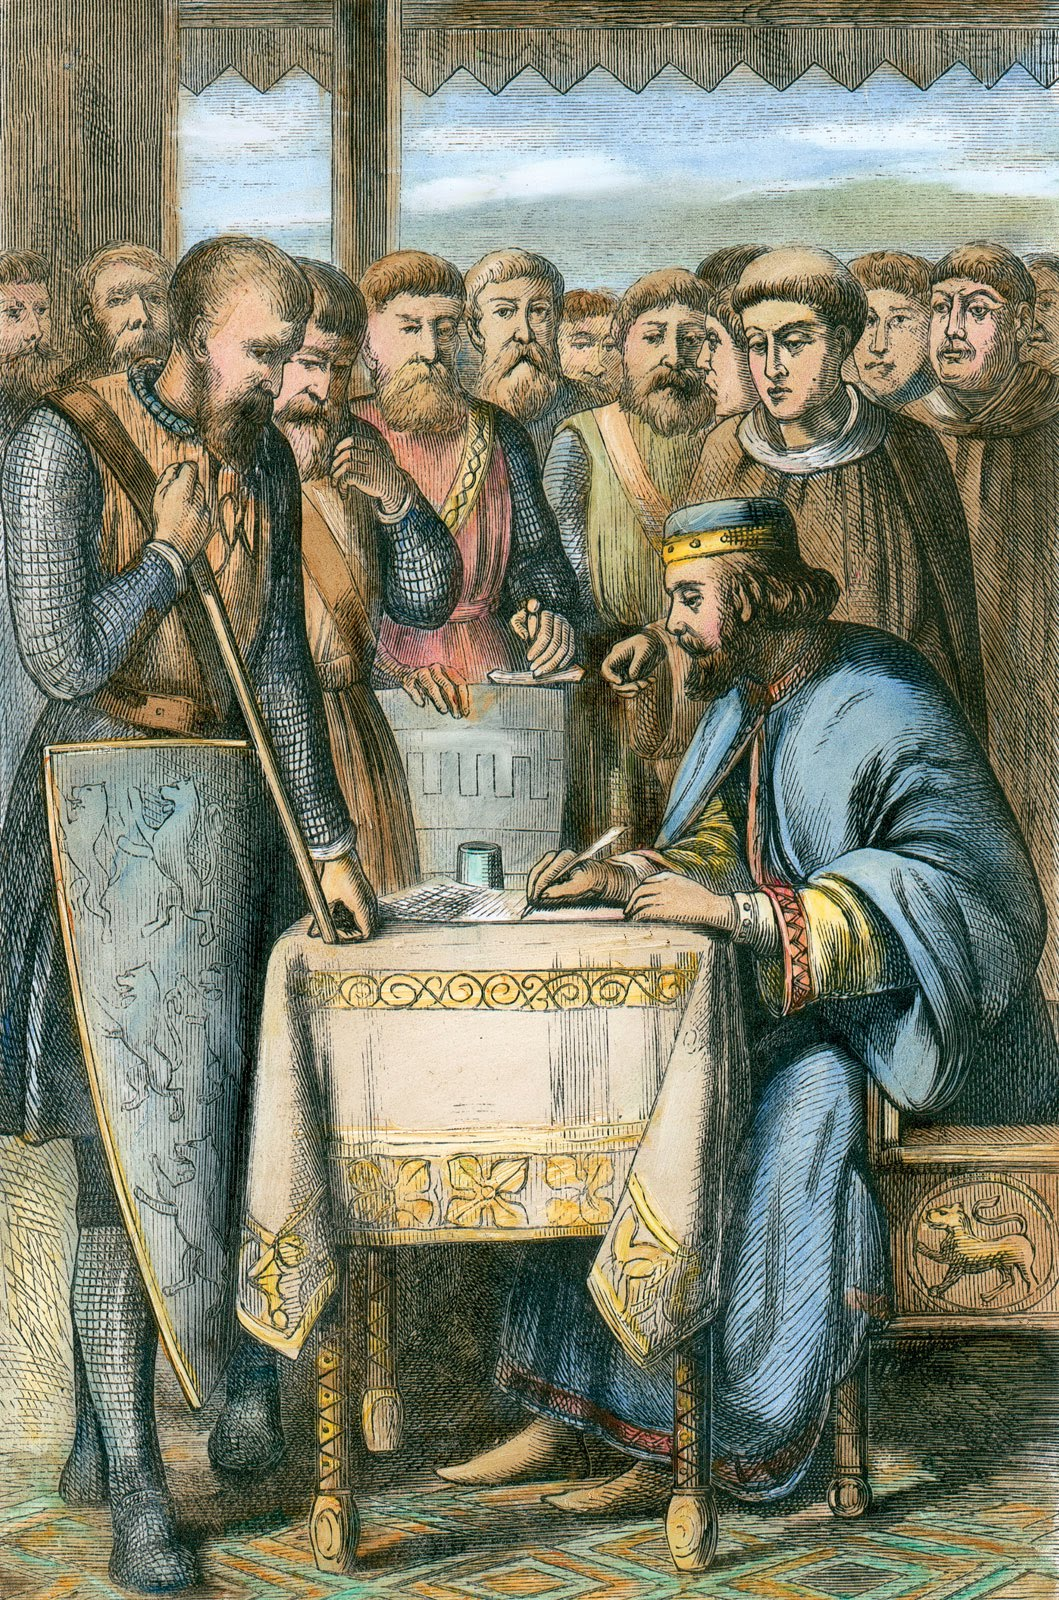 Monkey in the Middle: The Magna Carta